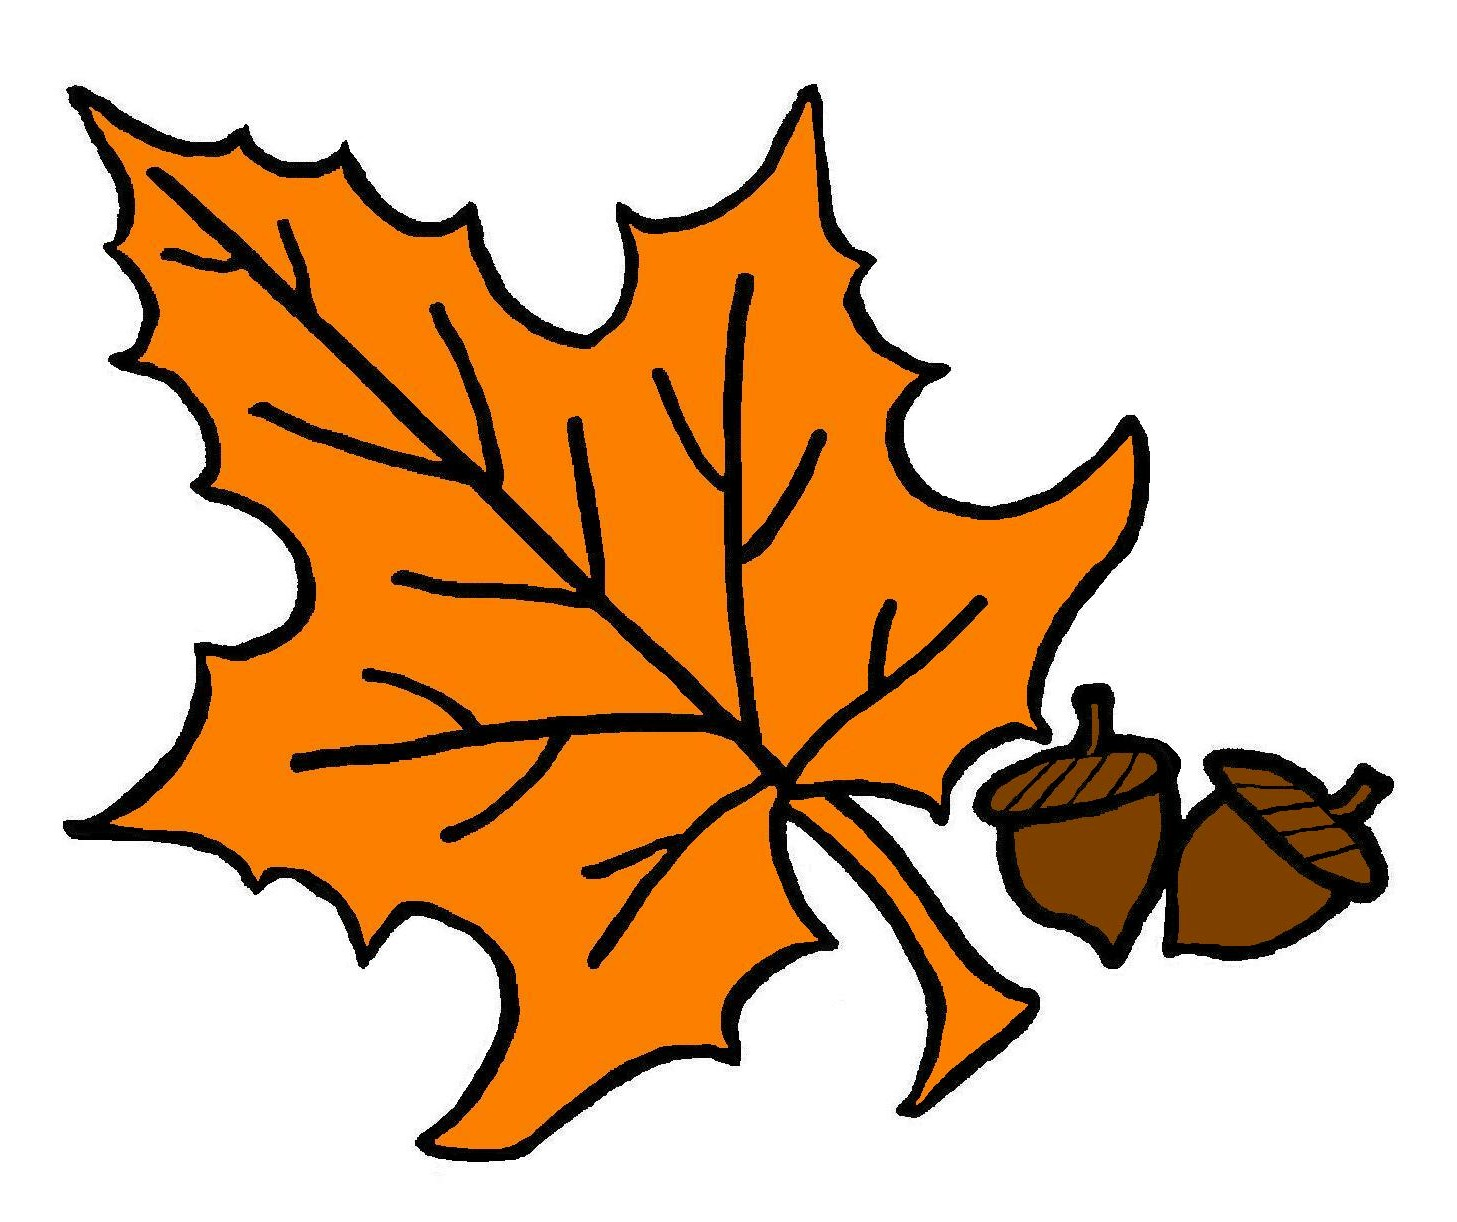 1457x1222 Fall Leaves Border Clipart Free Images 4